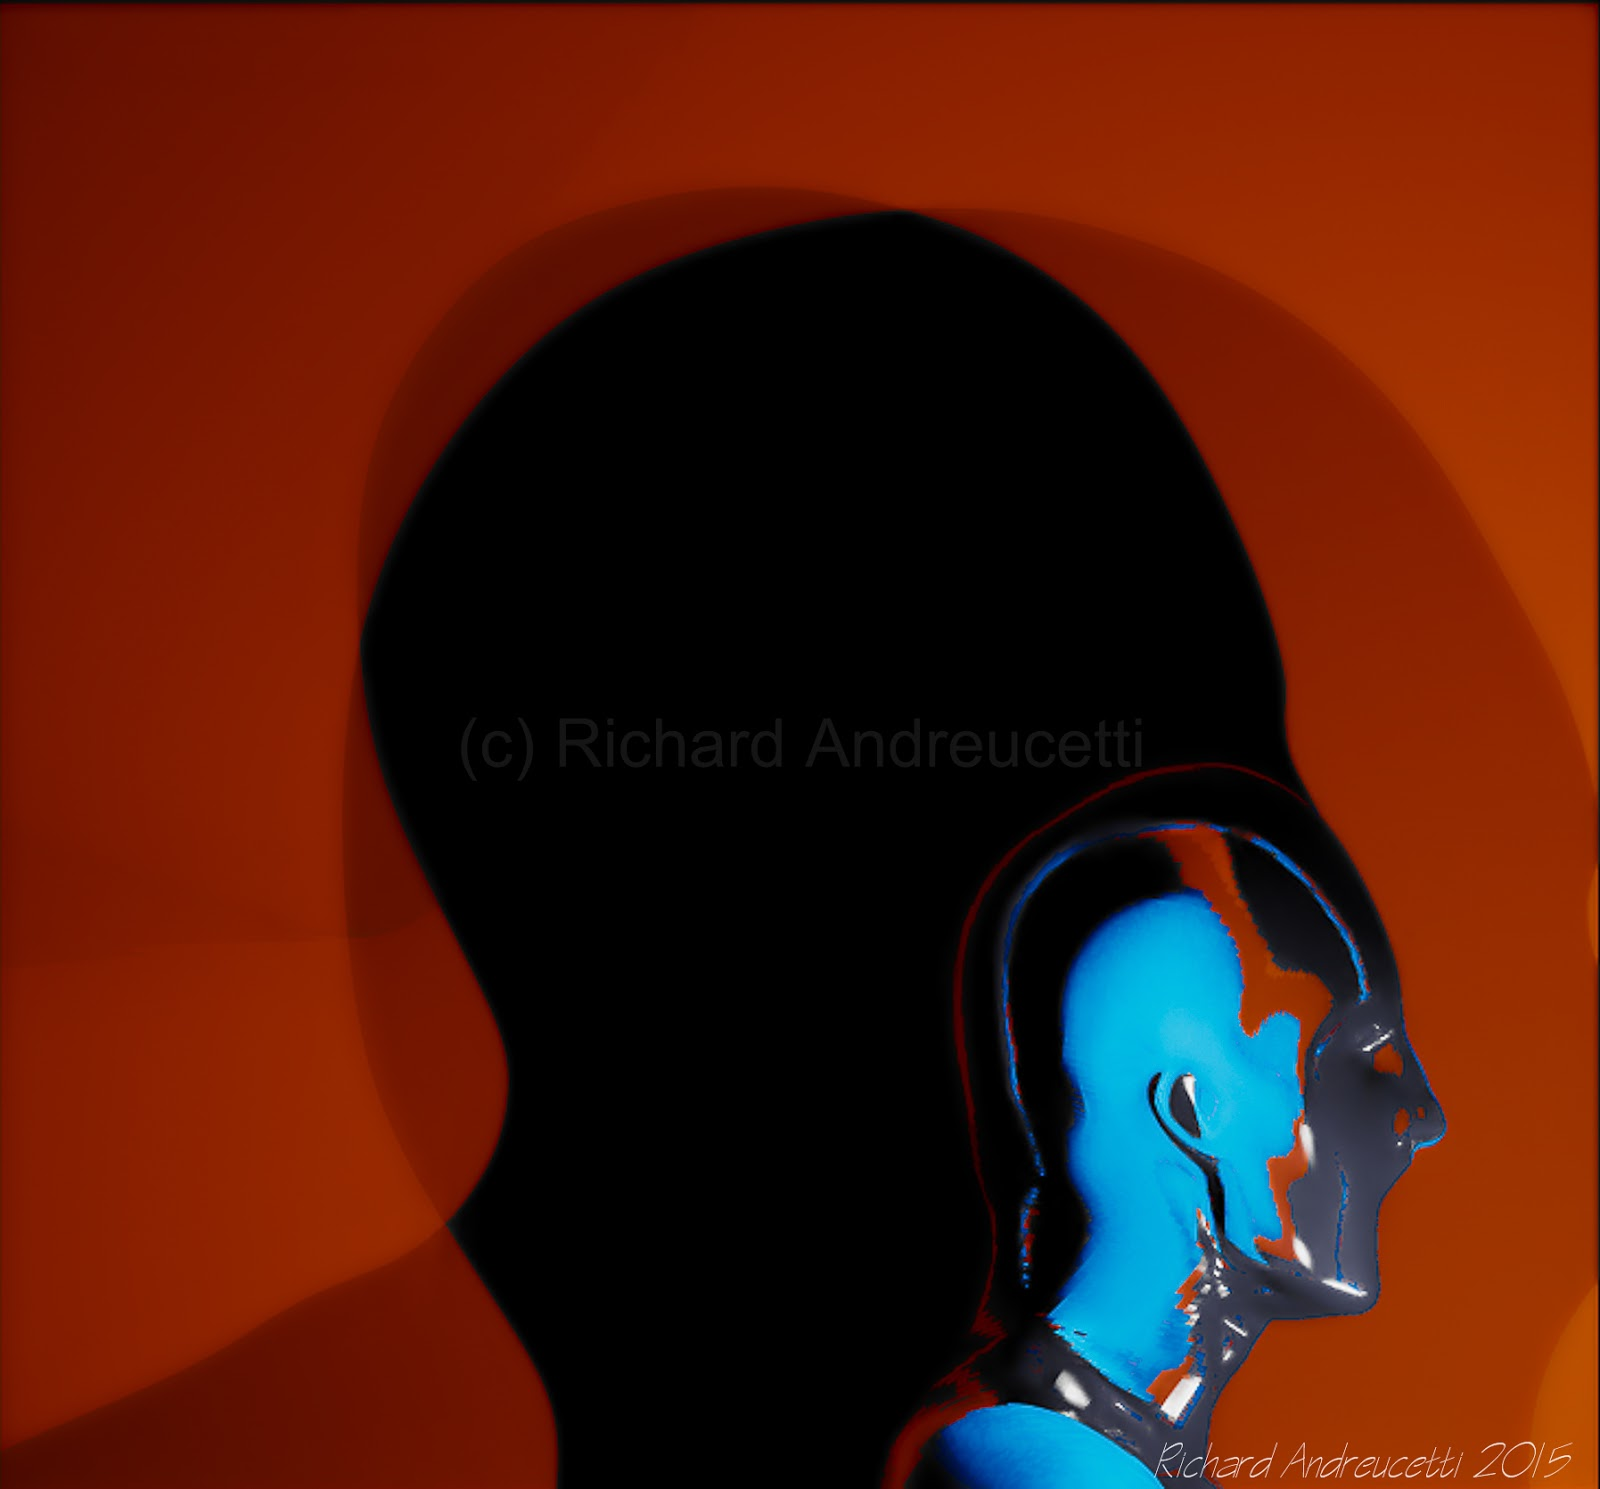 irish abstract artists, album cover artist richard andreucetti, andreucettidesignstudio